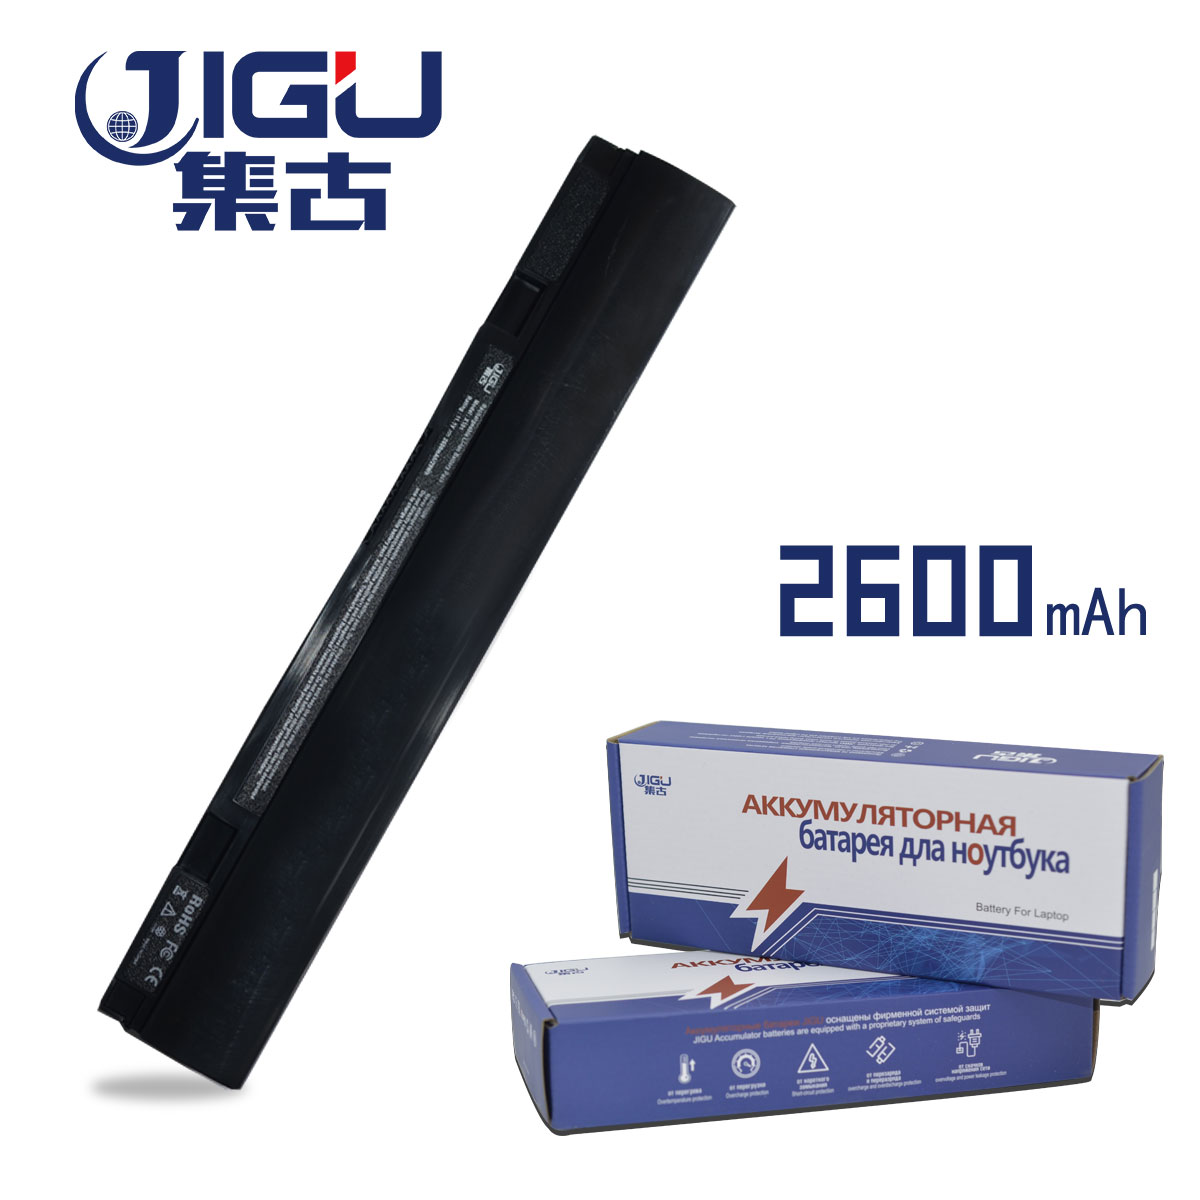 JIGU Laptop Battery For ASUS Eee PC X101CH X101 X101C X101H Replace: A31-X101 A32-X101 цена